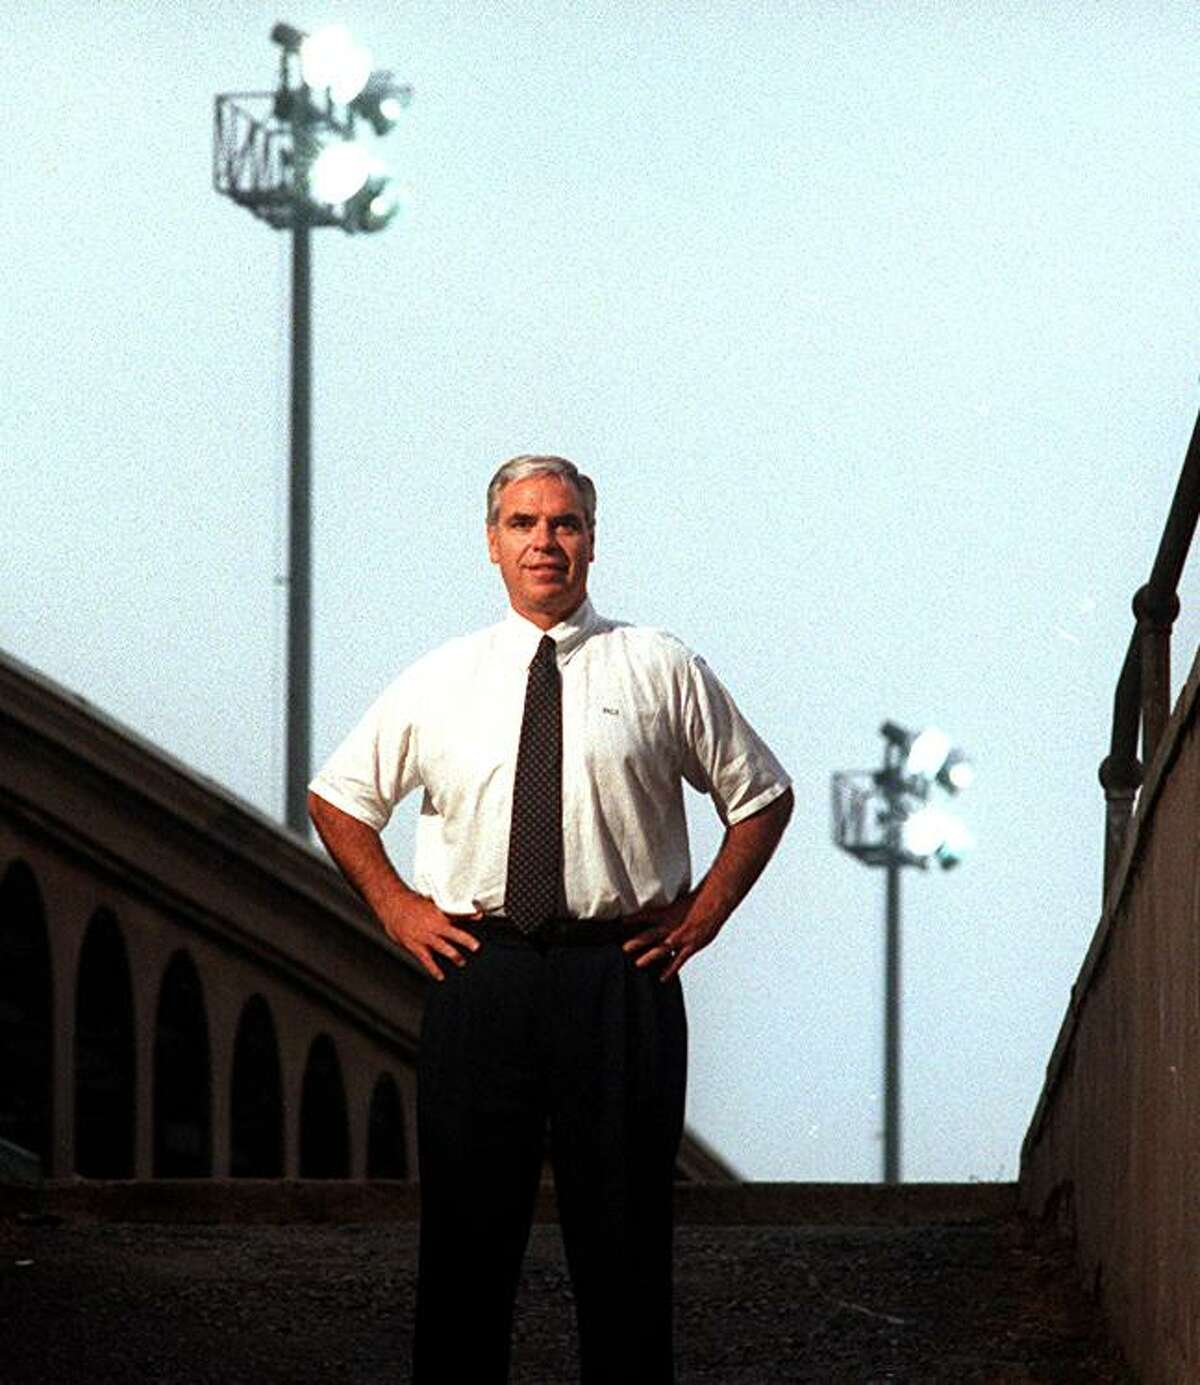 A portrait of Yale University Athletic Director Thomas Beckett in September 1994 made by New Haven Register Staff Photographer Peter Hvizdak at the underground Route 34 entrance to the Yale football practice field and the Yale baseball field upon Beckett's arrival at Yale from Stanford University as the athletic director.